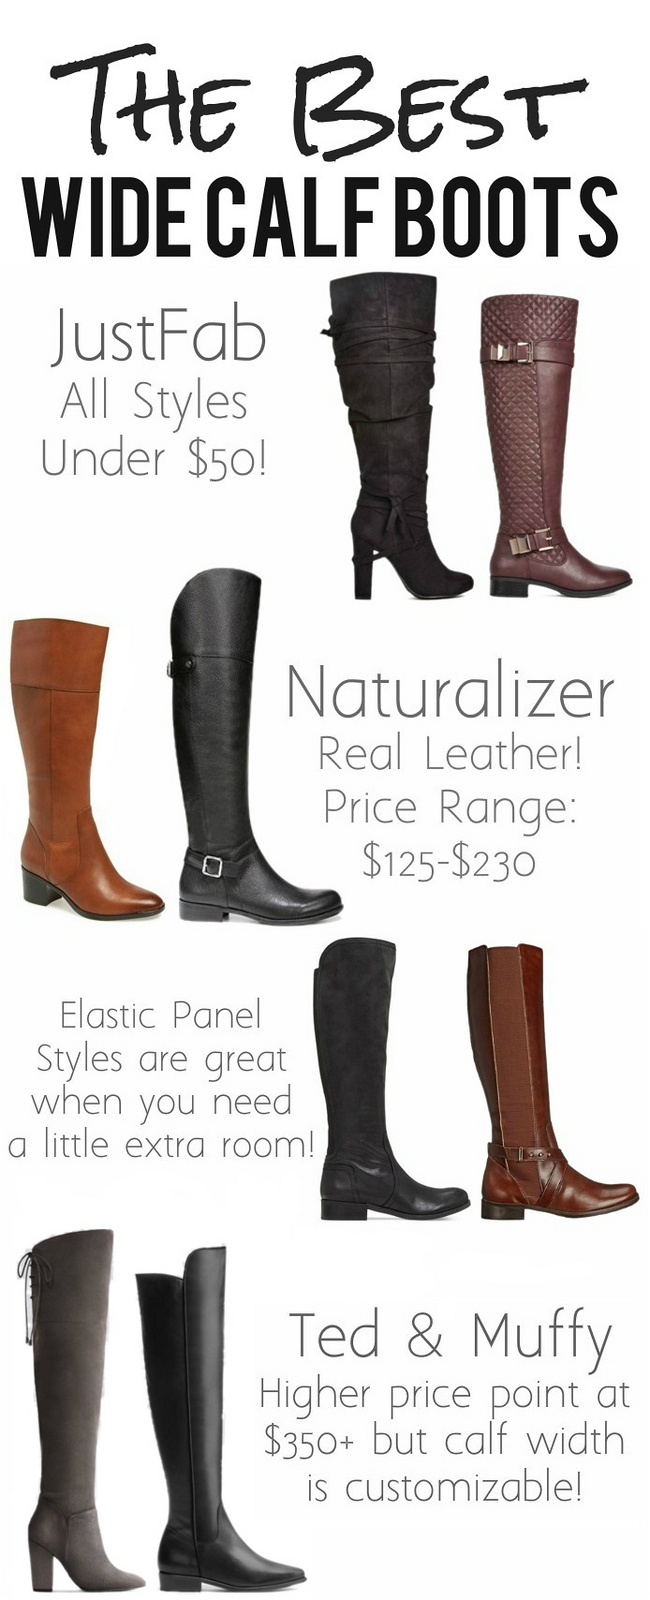 The Best Wide Calf Boots - living after